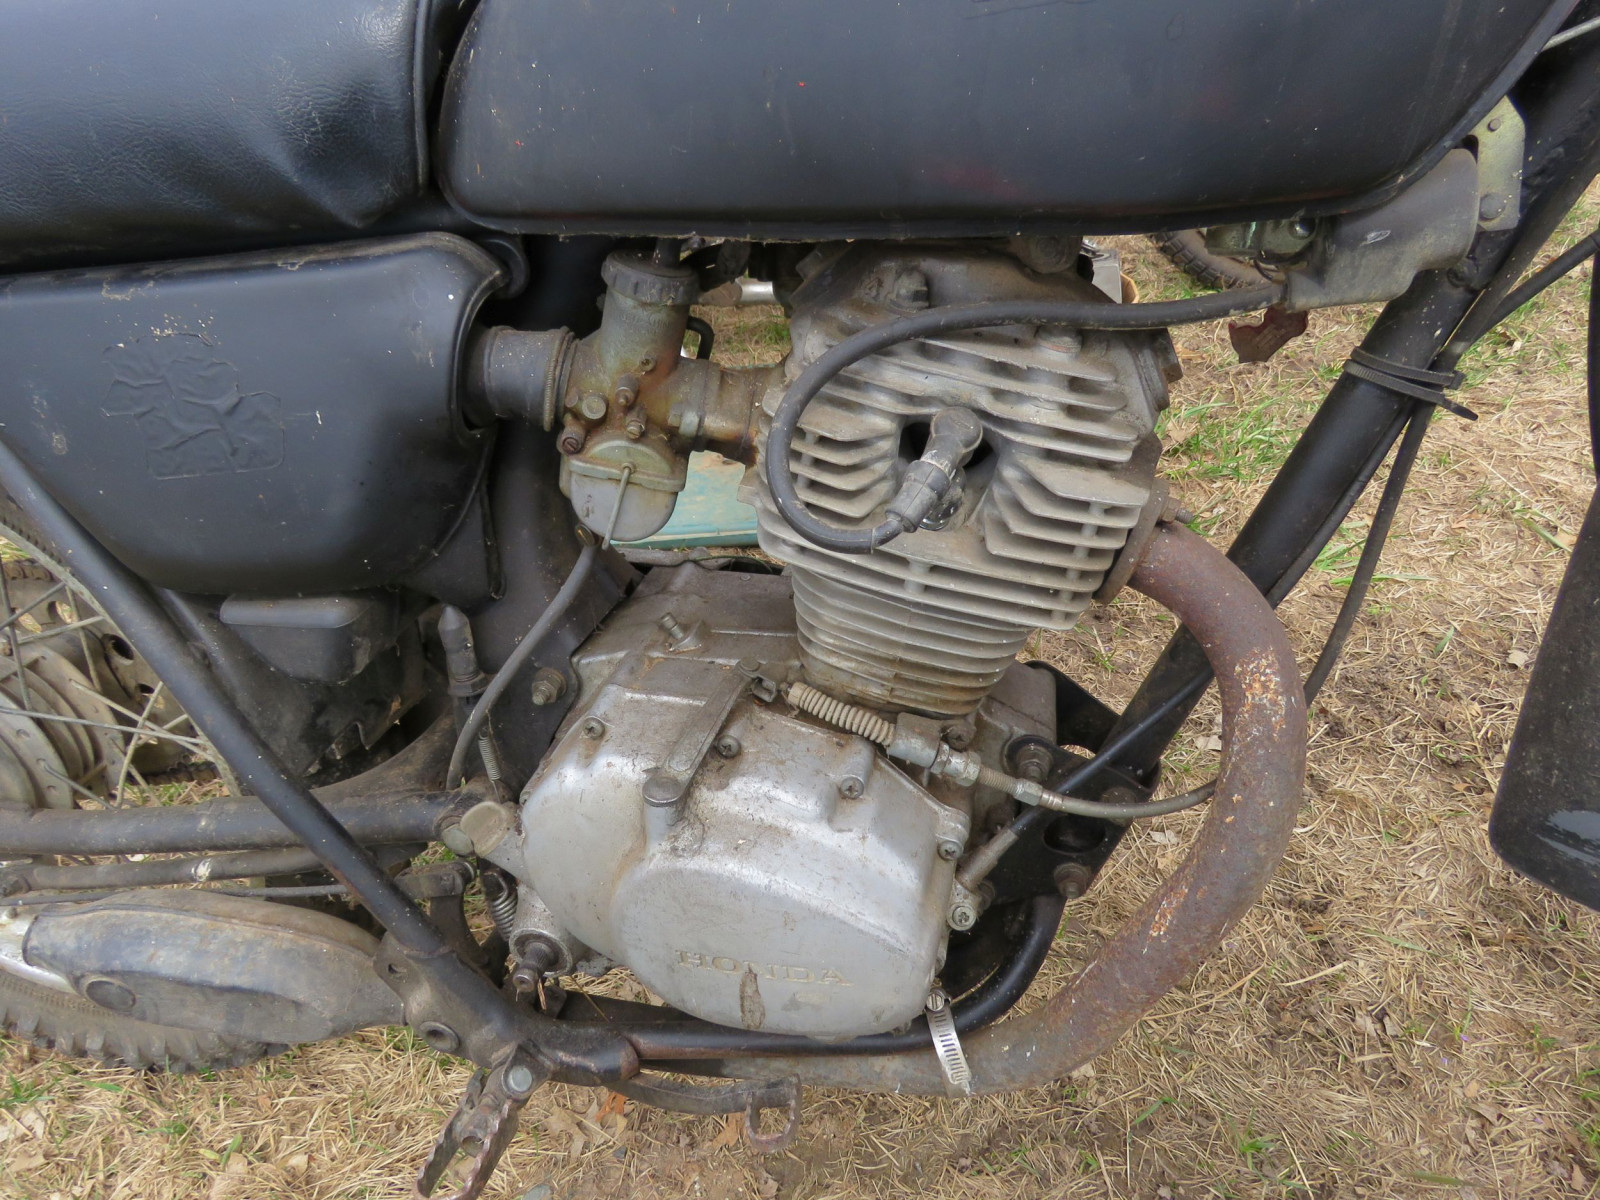 Honda 125XL Motorcycle for Project or parts - Image 2